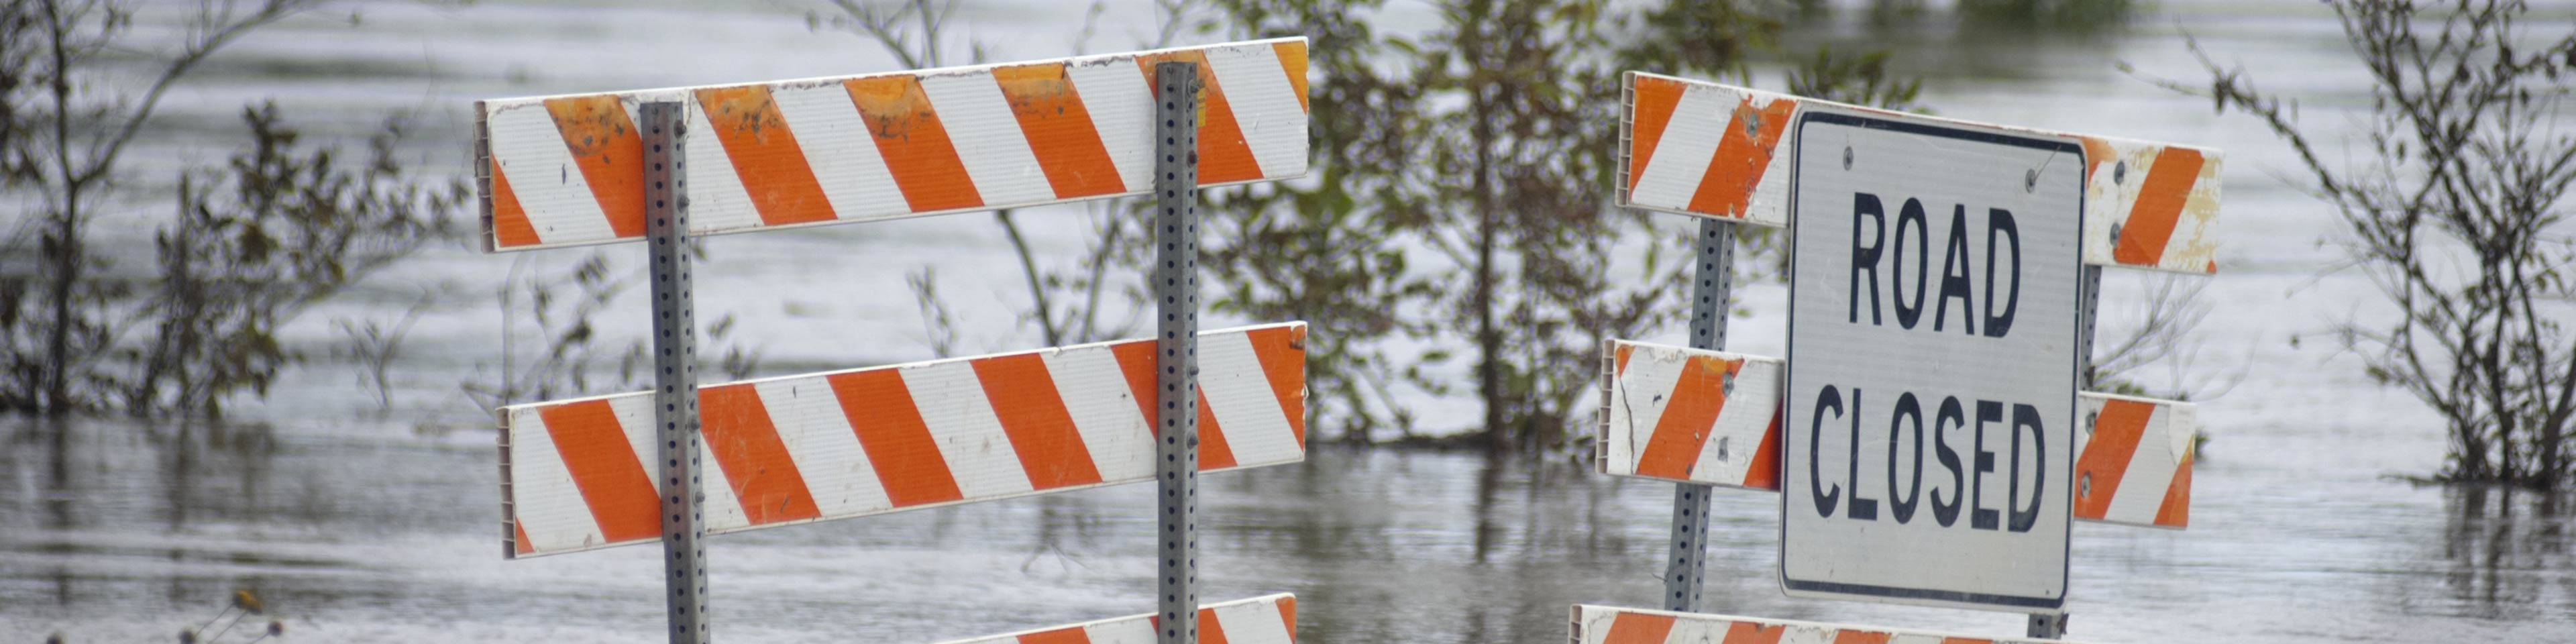 Flooded road with a sign that says Road Closed